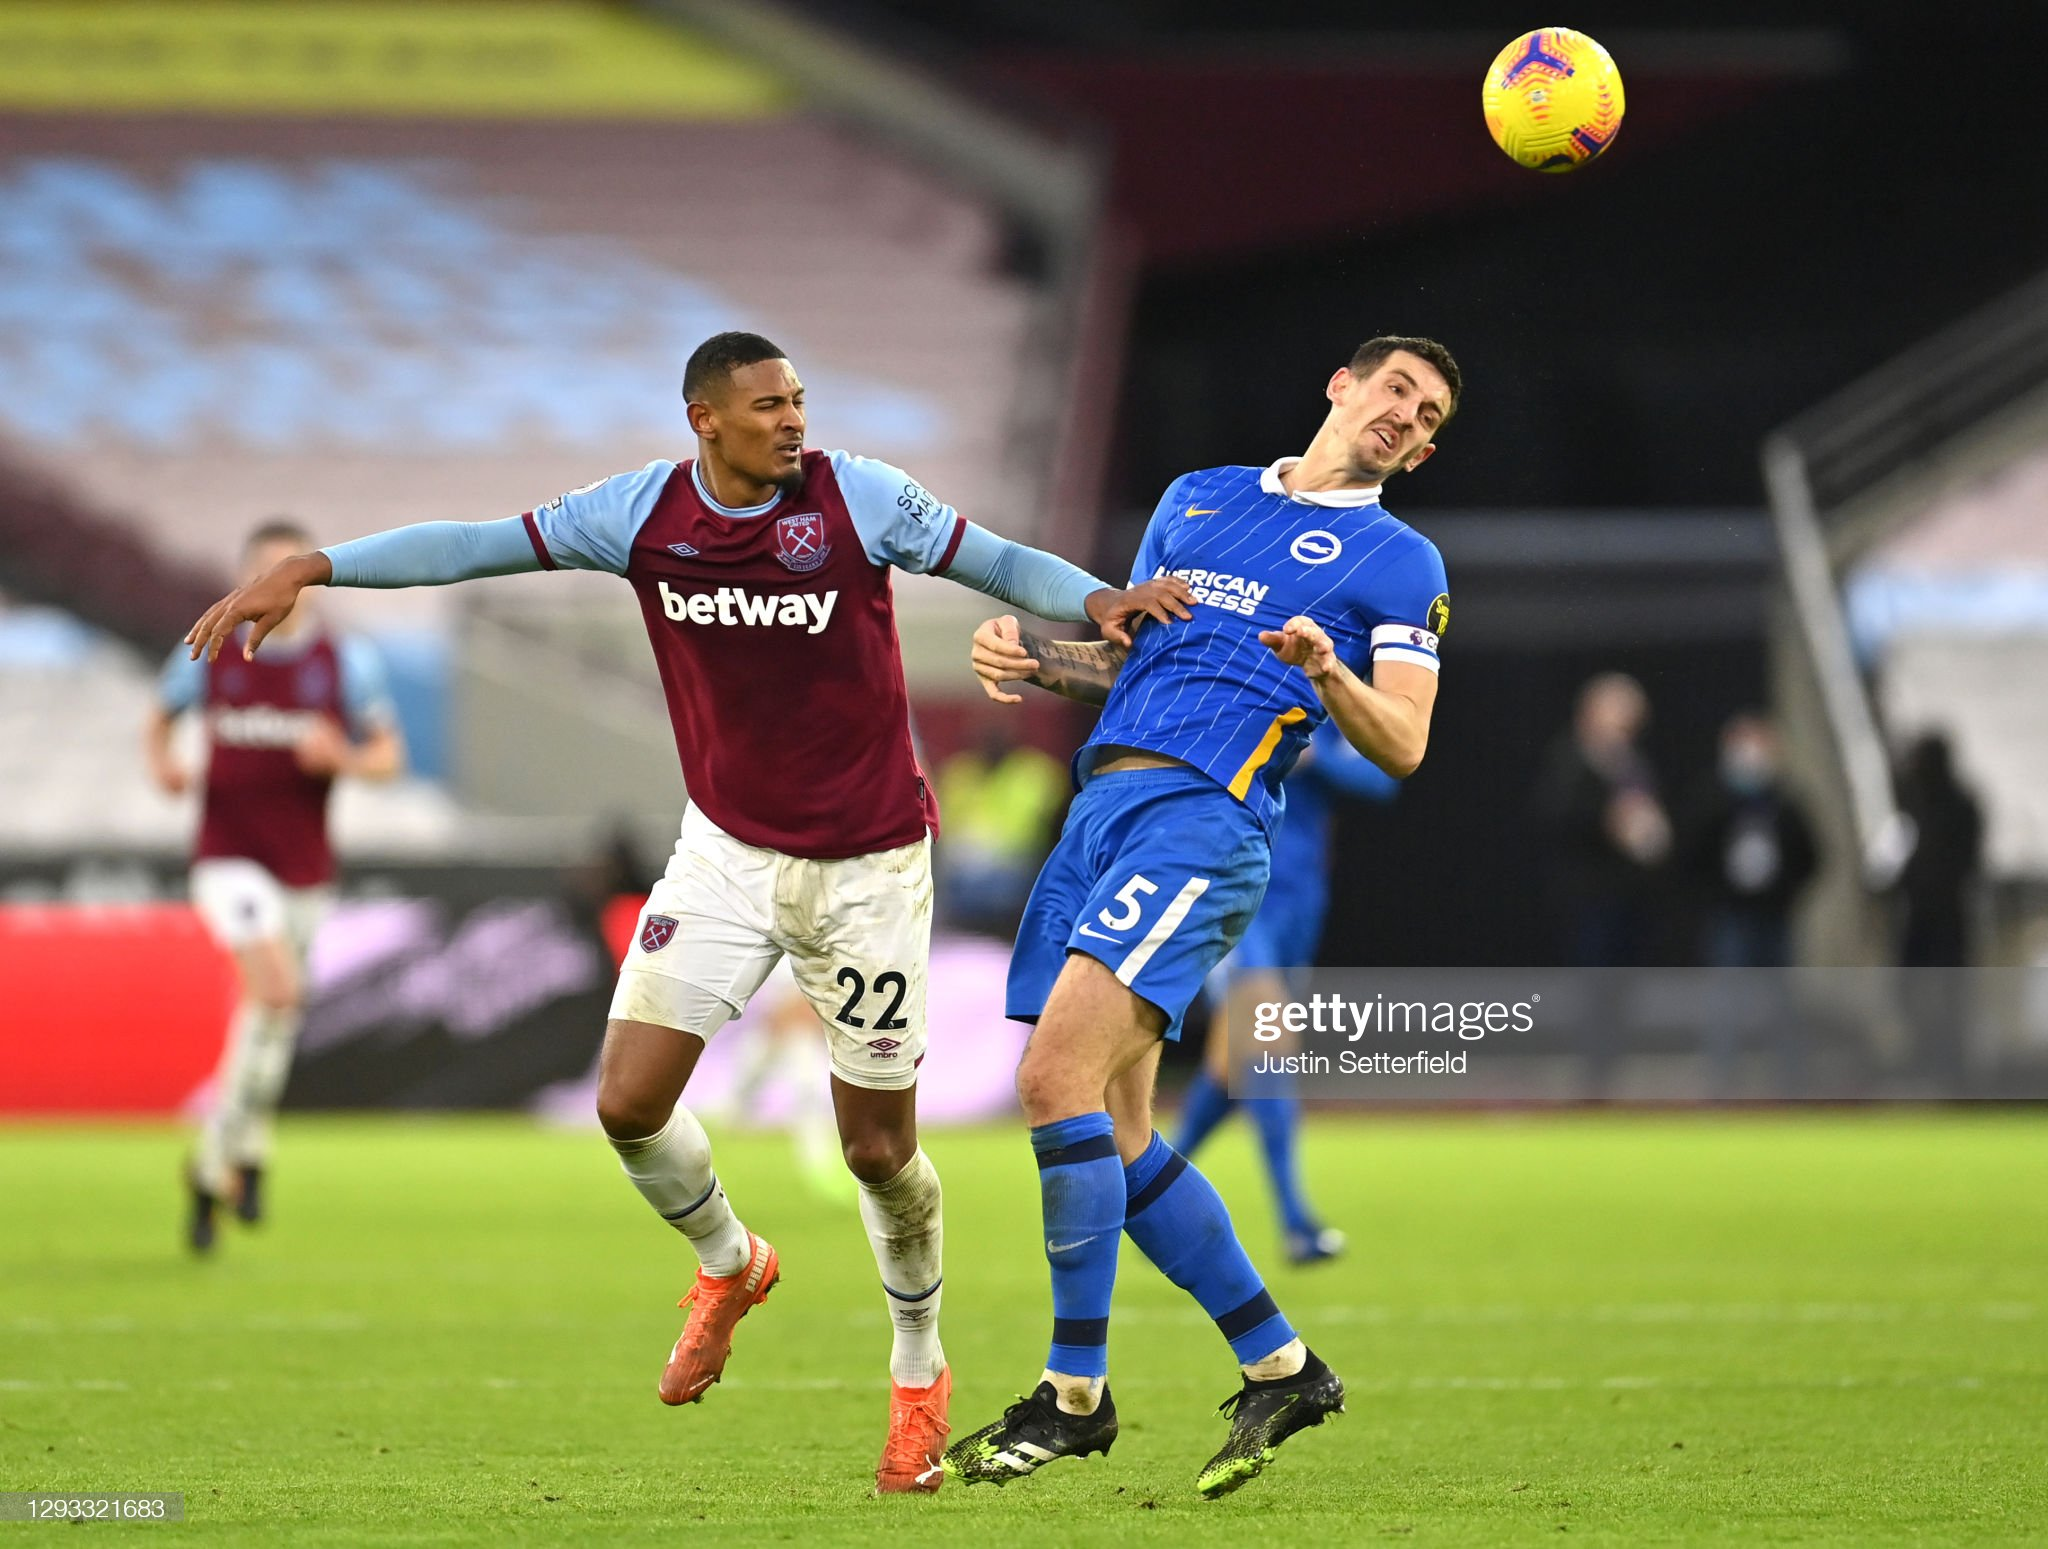 Brighton vs West Ham preview, prediction and odds